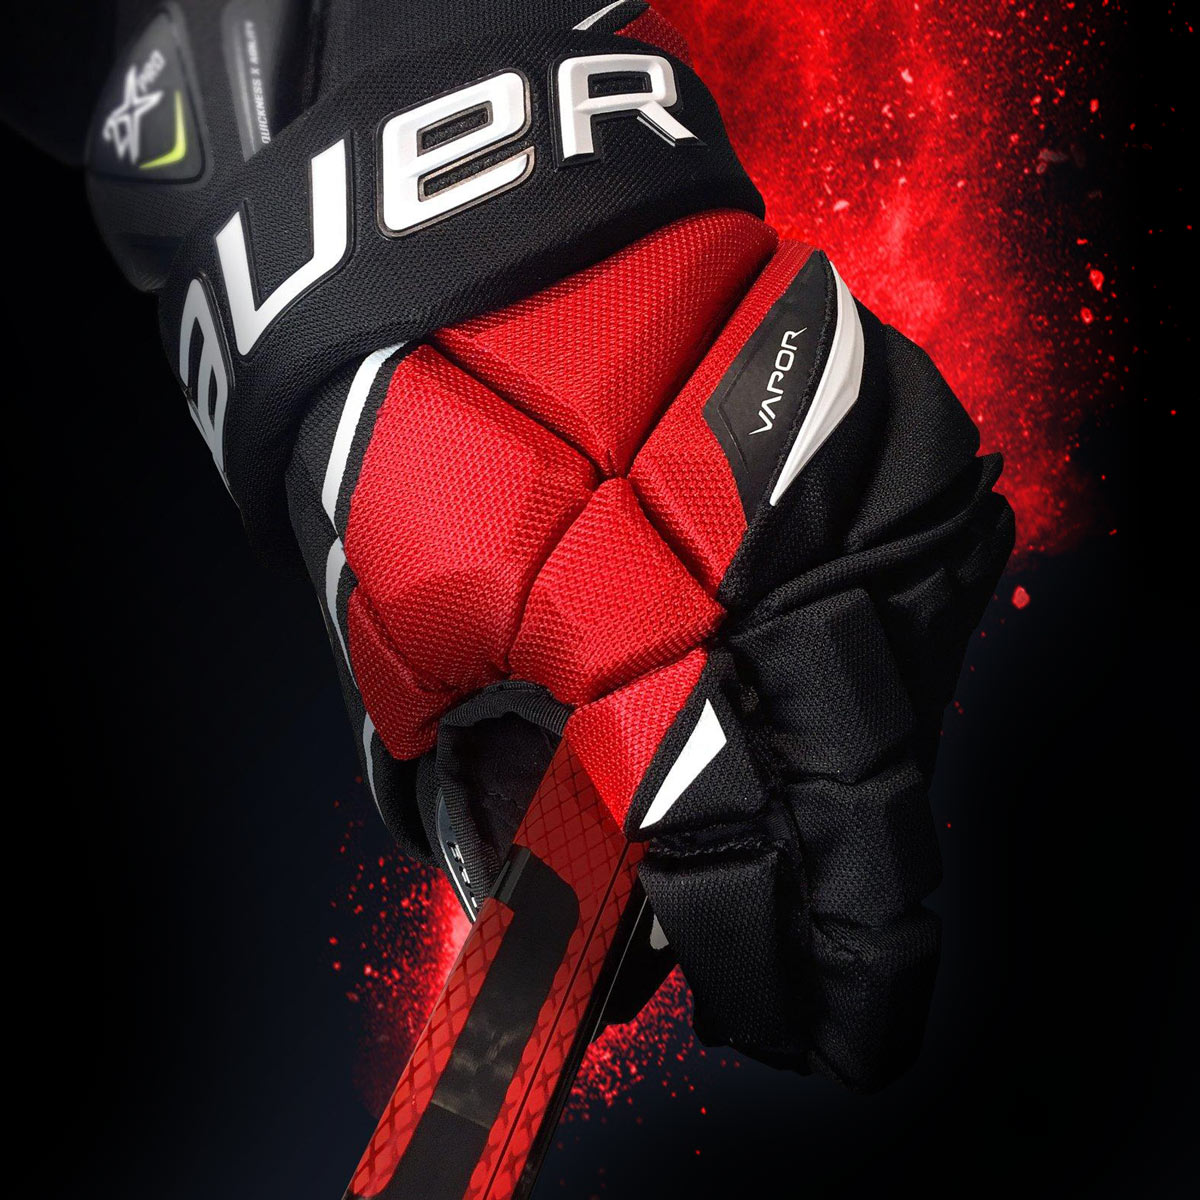 Bauer 2X Pro Glove Review